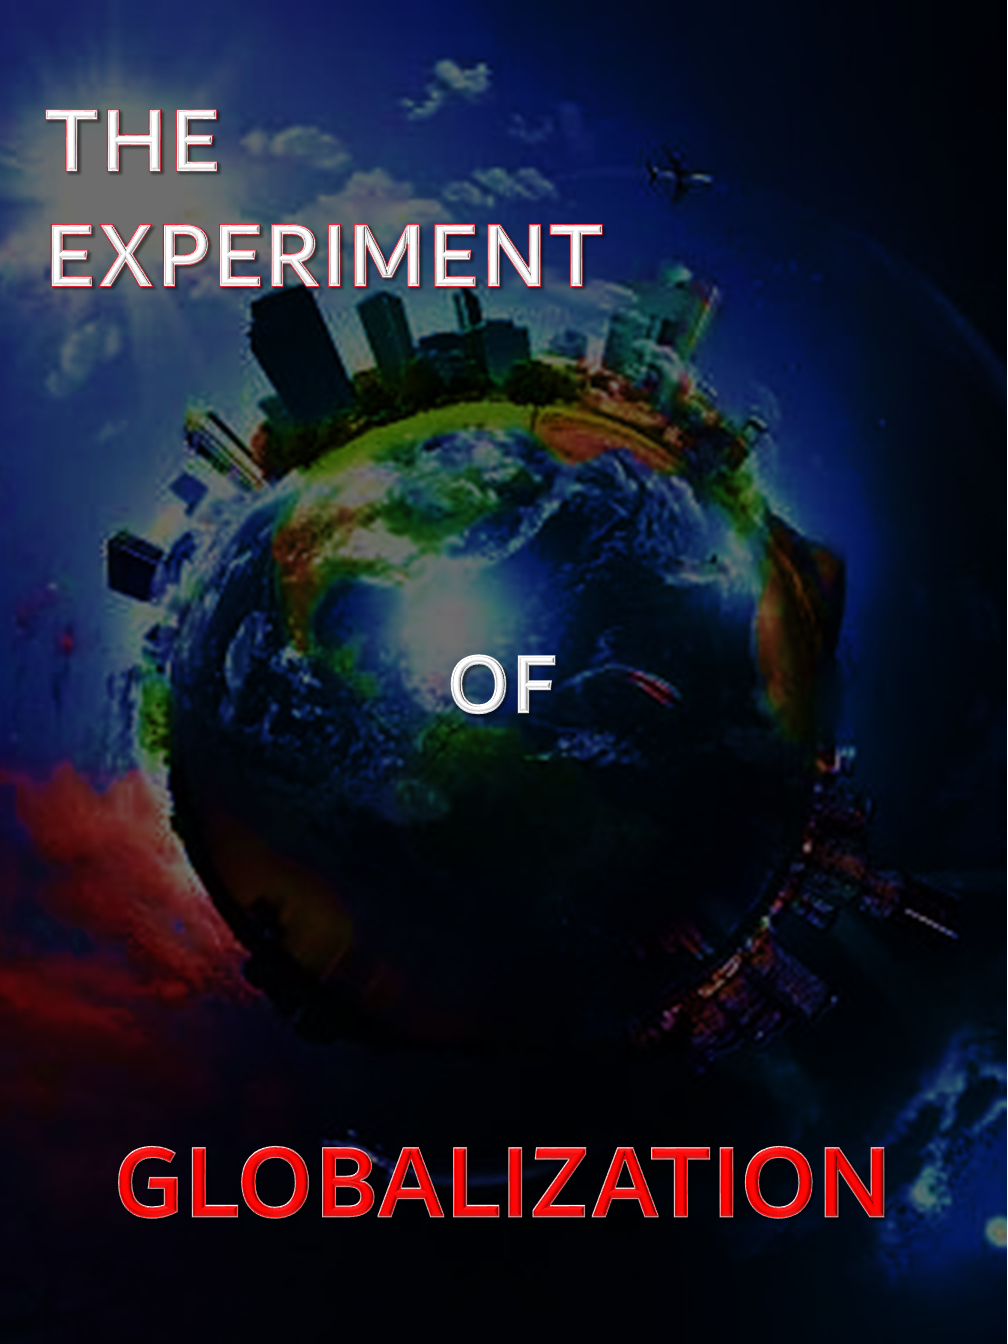 The Experiment of Globalization